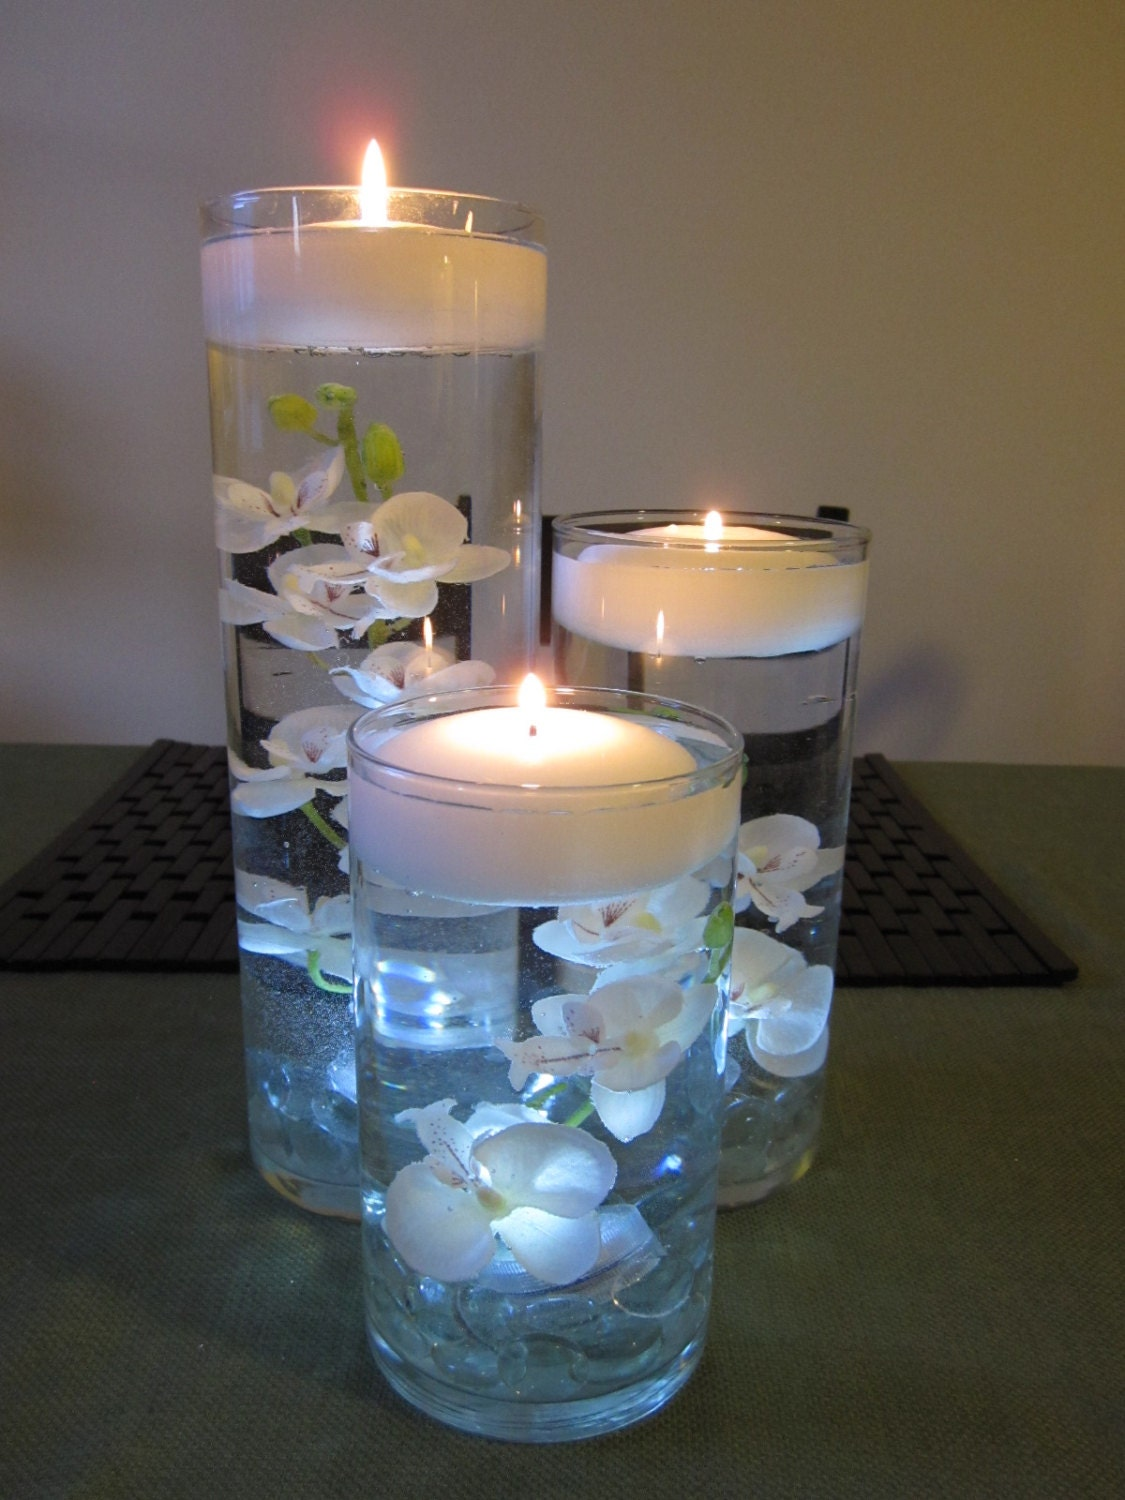 White Orchid Floating Candle Wedding Centerpiece Decor